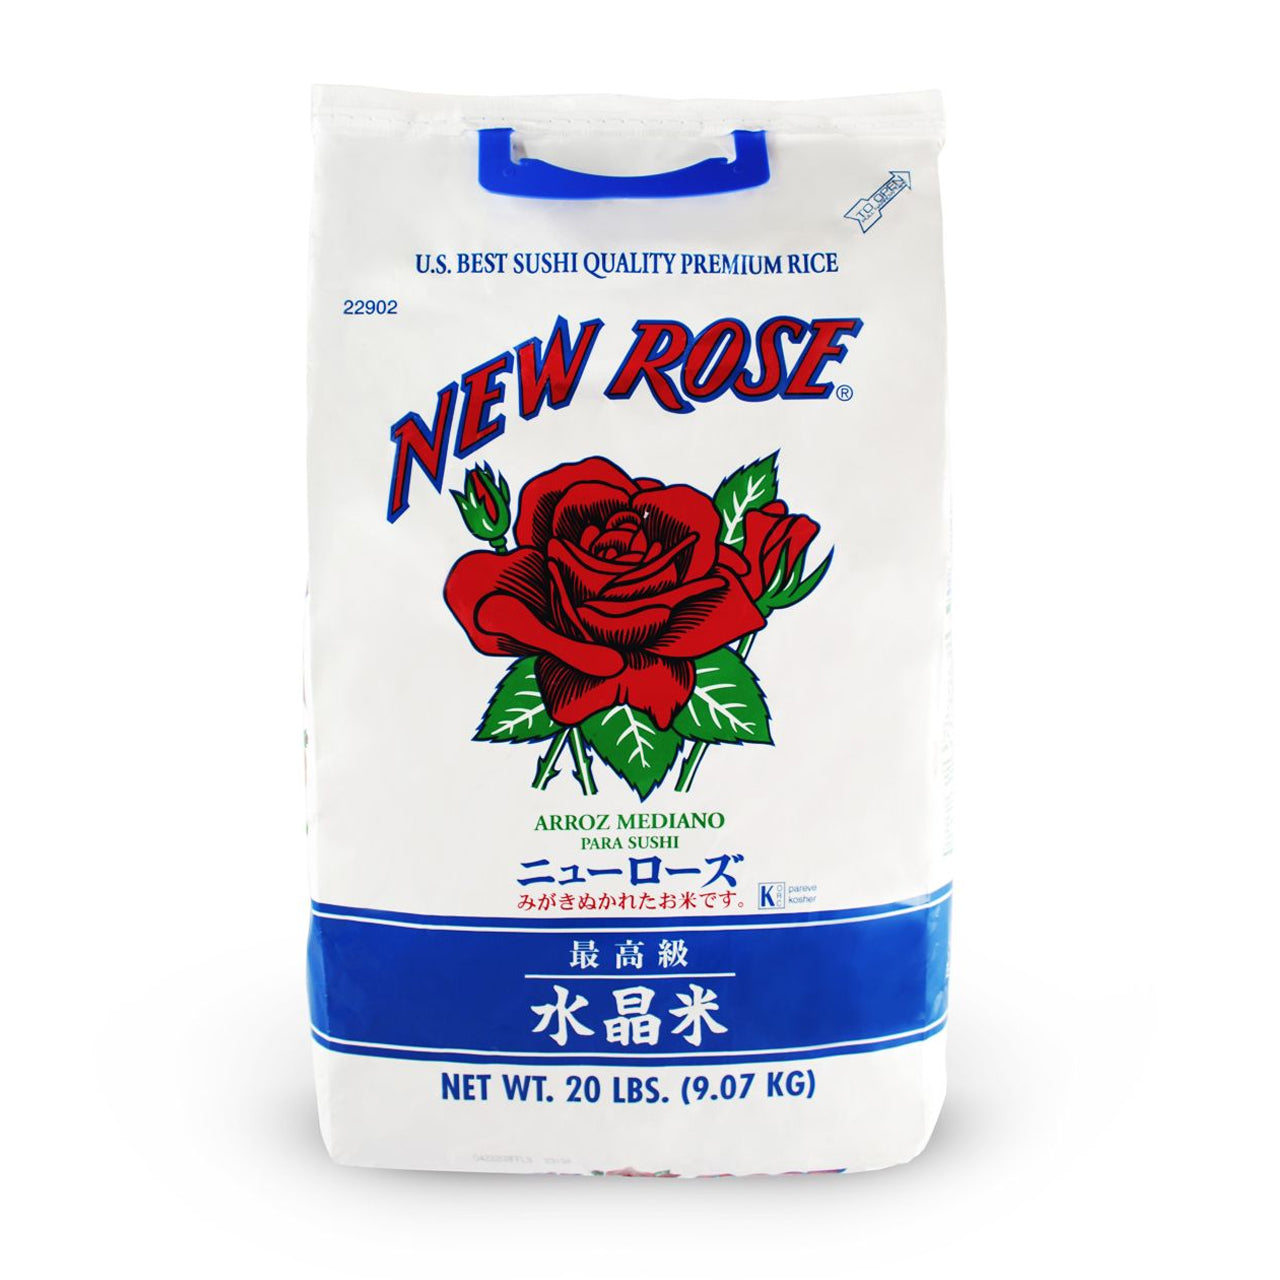 New Rose Medium Grain White Rice 20lbs (9.07kg) (SKU: 22902)